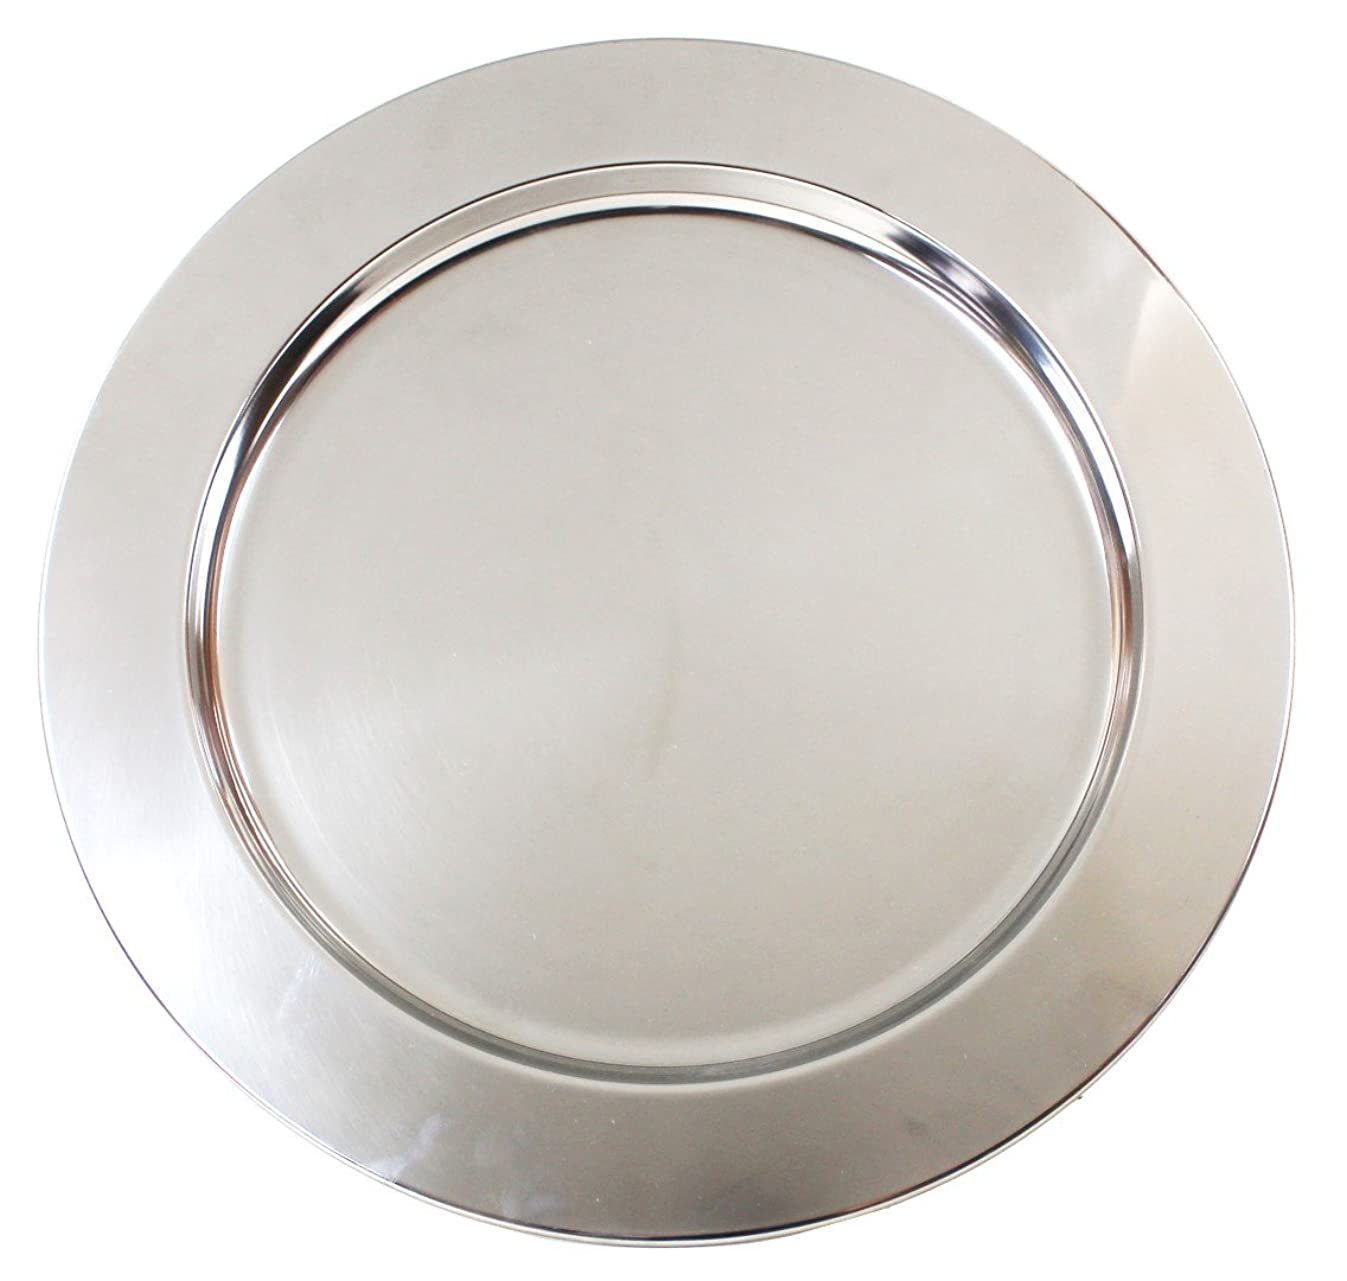 Silver Stainless Steel Metal Charger Plates - Set of 4-13 inch